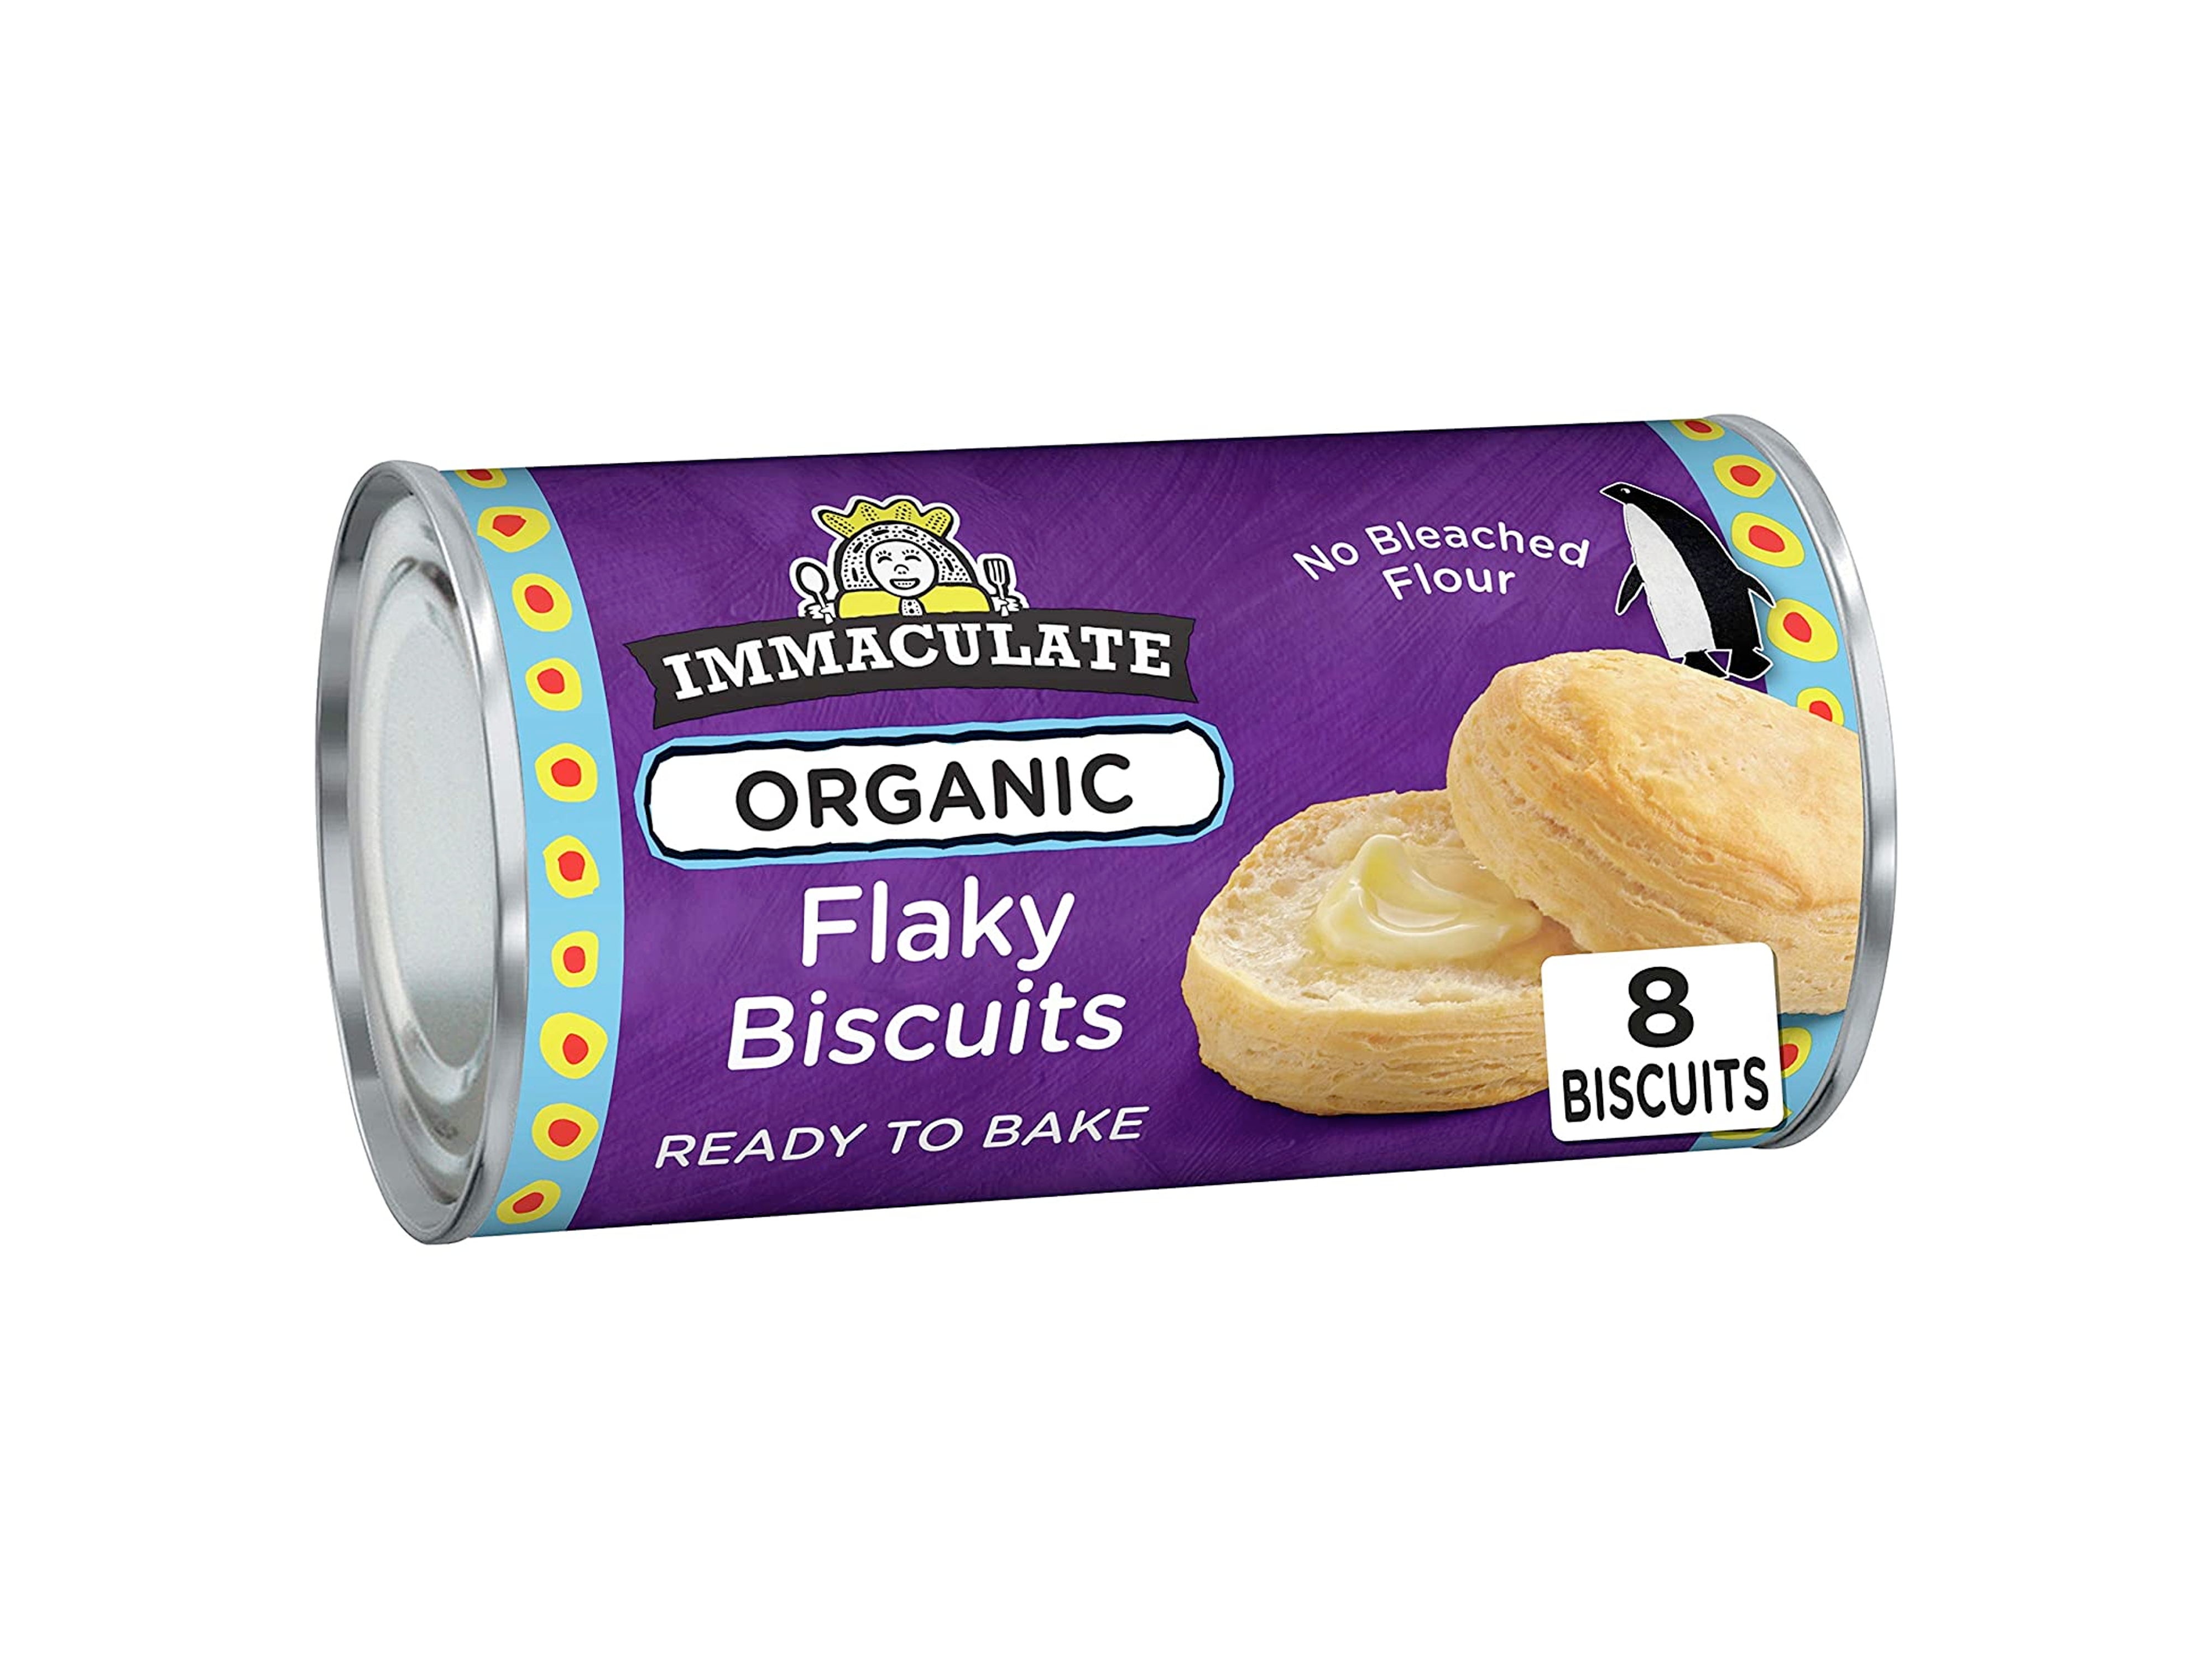 immaculate flaky biscuits organic